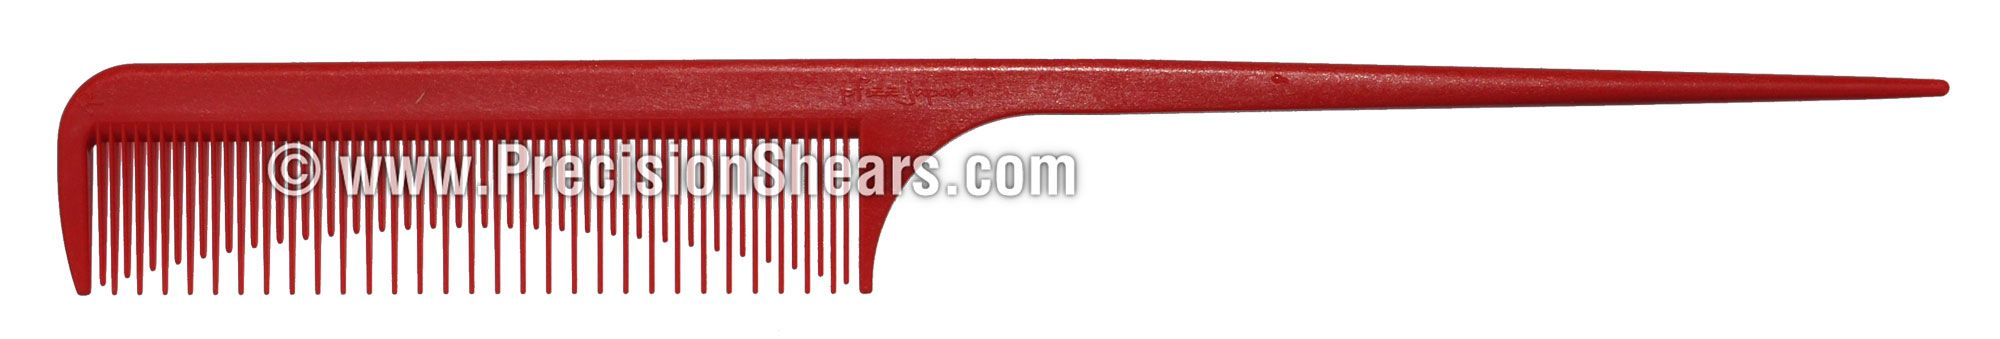 PFIZZ Ring Tail Comb Red